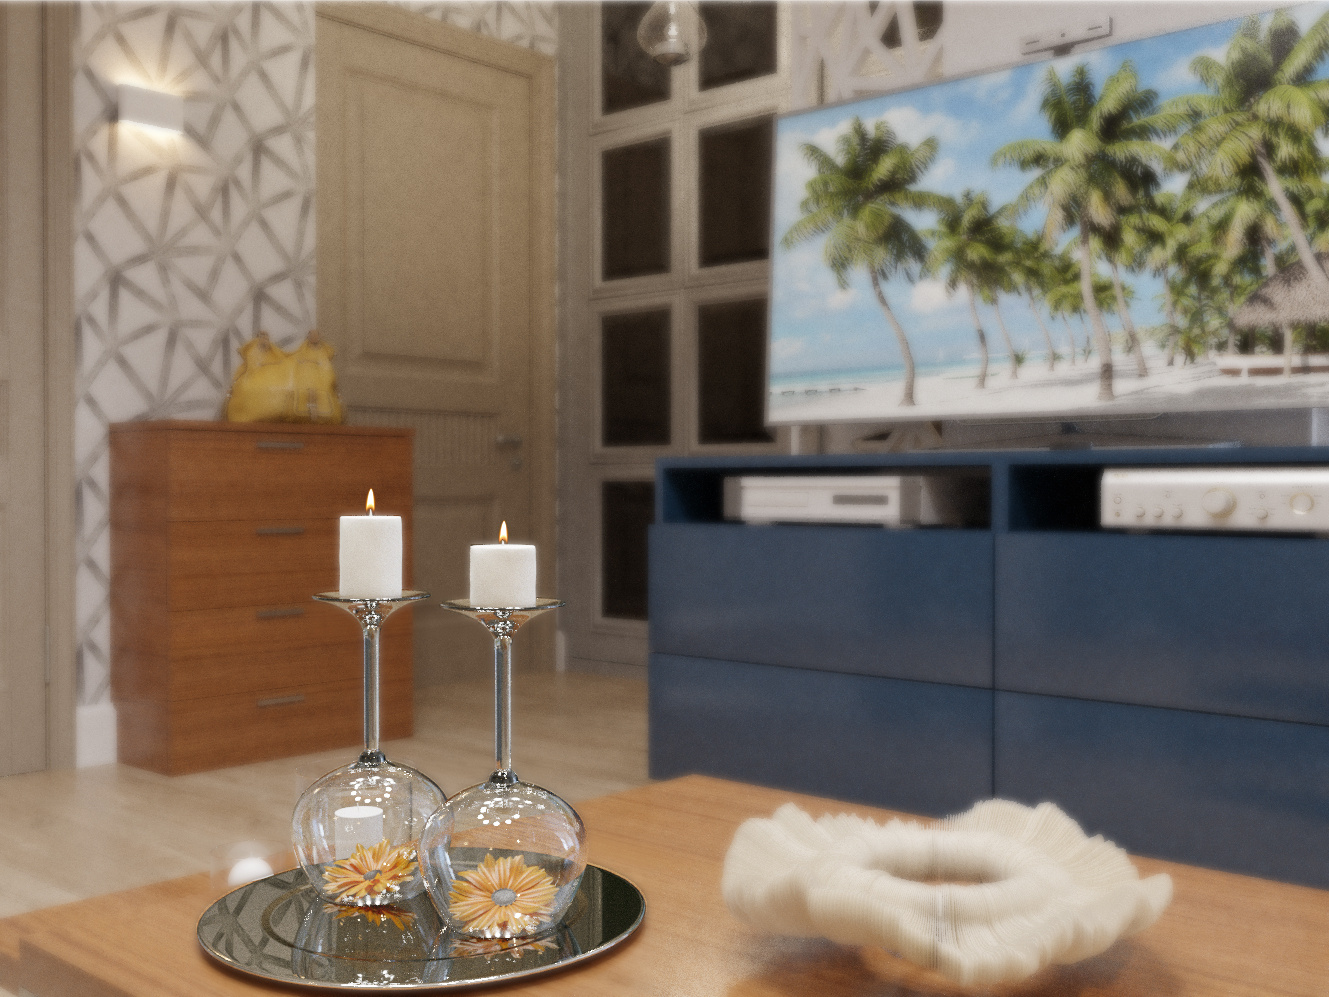 Living room with kitchenette in 3d max corona render image